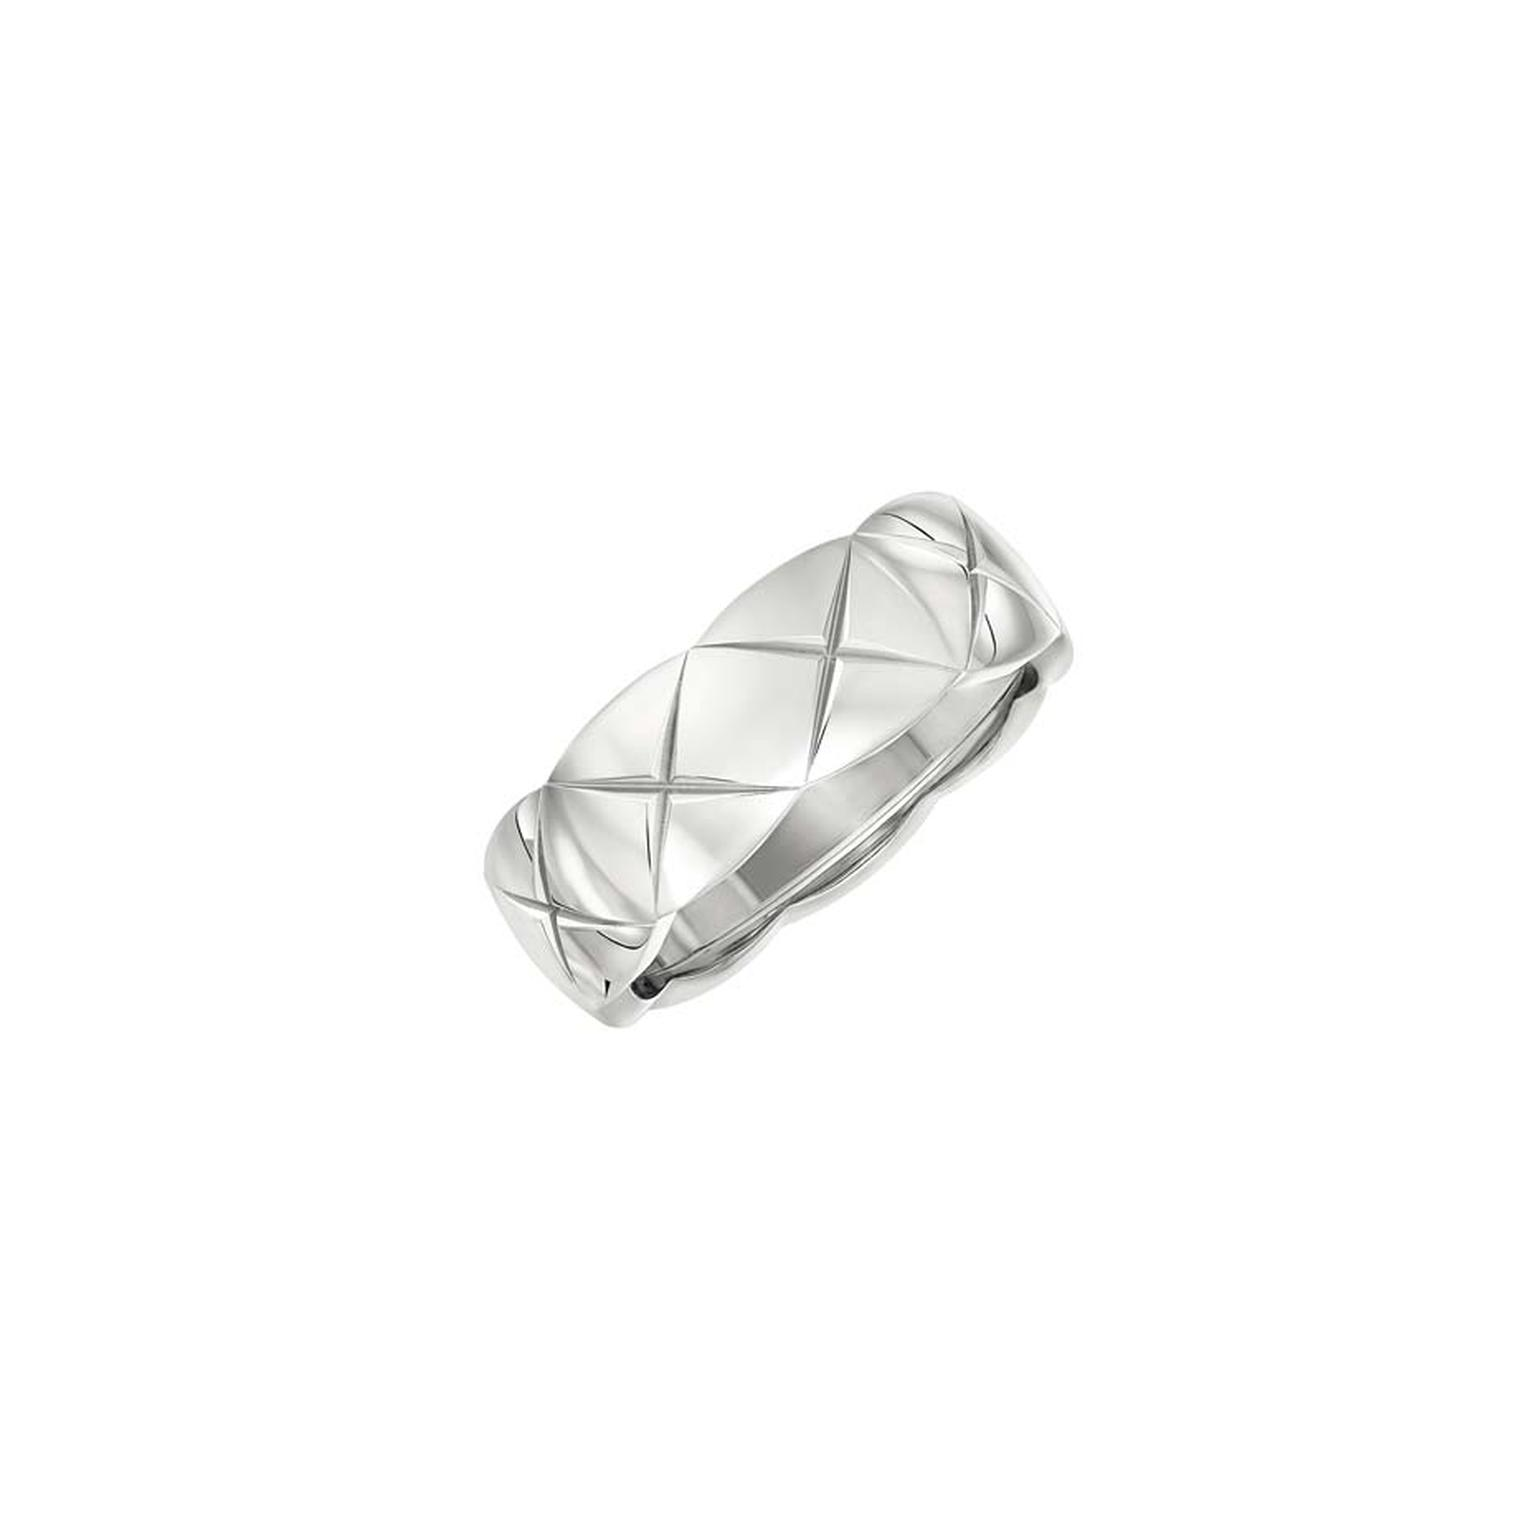 Small white gold ring from Chanel's new Coco Crush collection of fine jewellery.